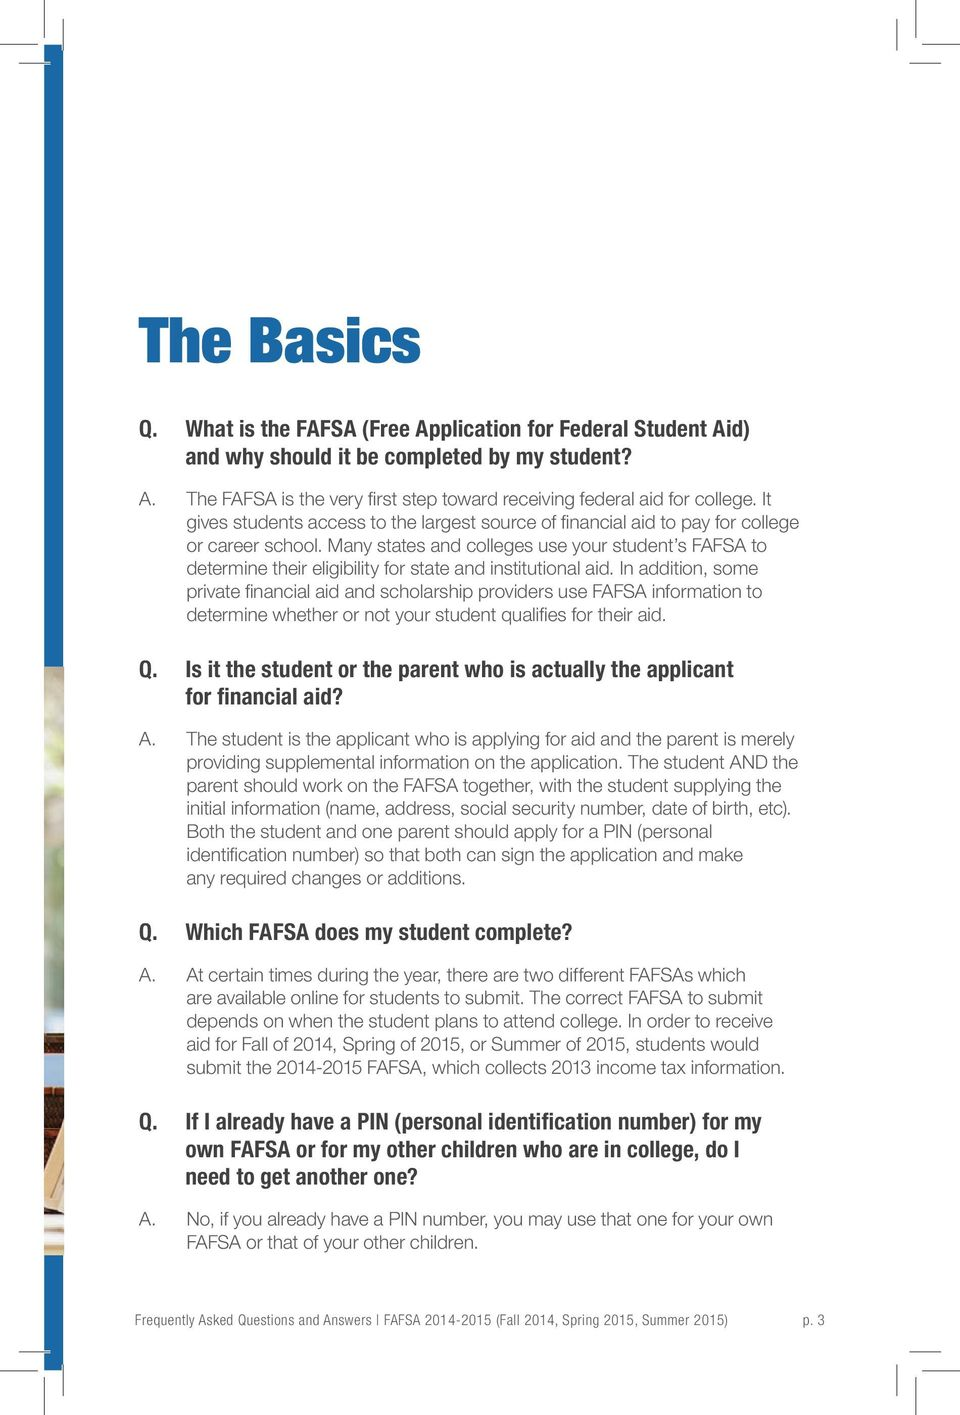 Many states and colleges use your student s FAFSA to determine their eligibility for state and institutional aid.